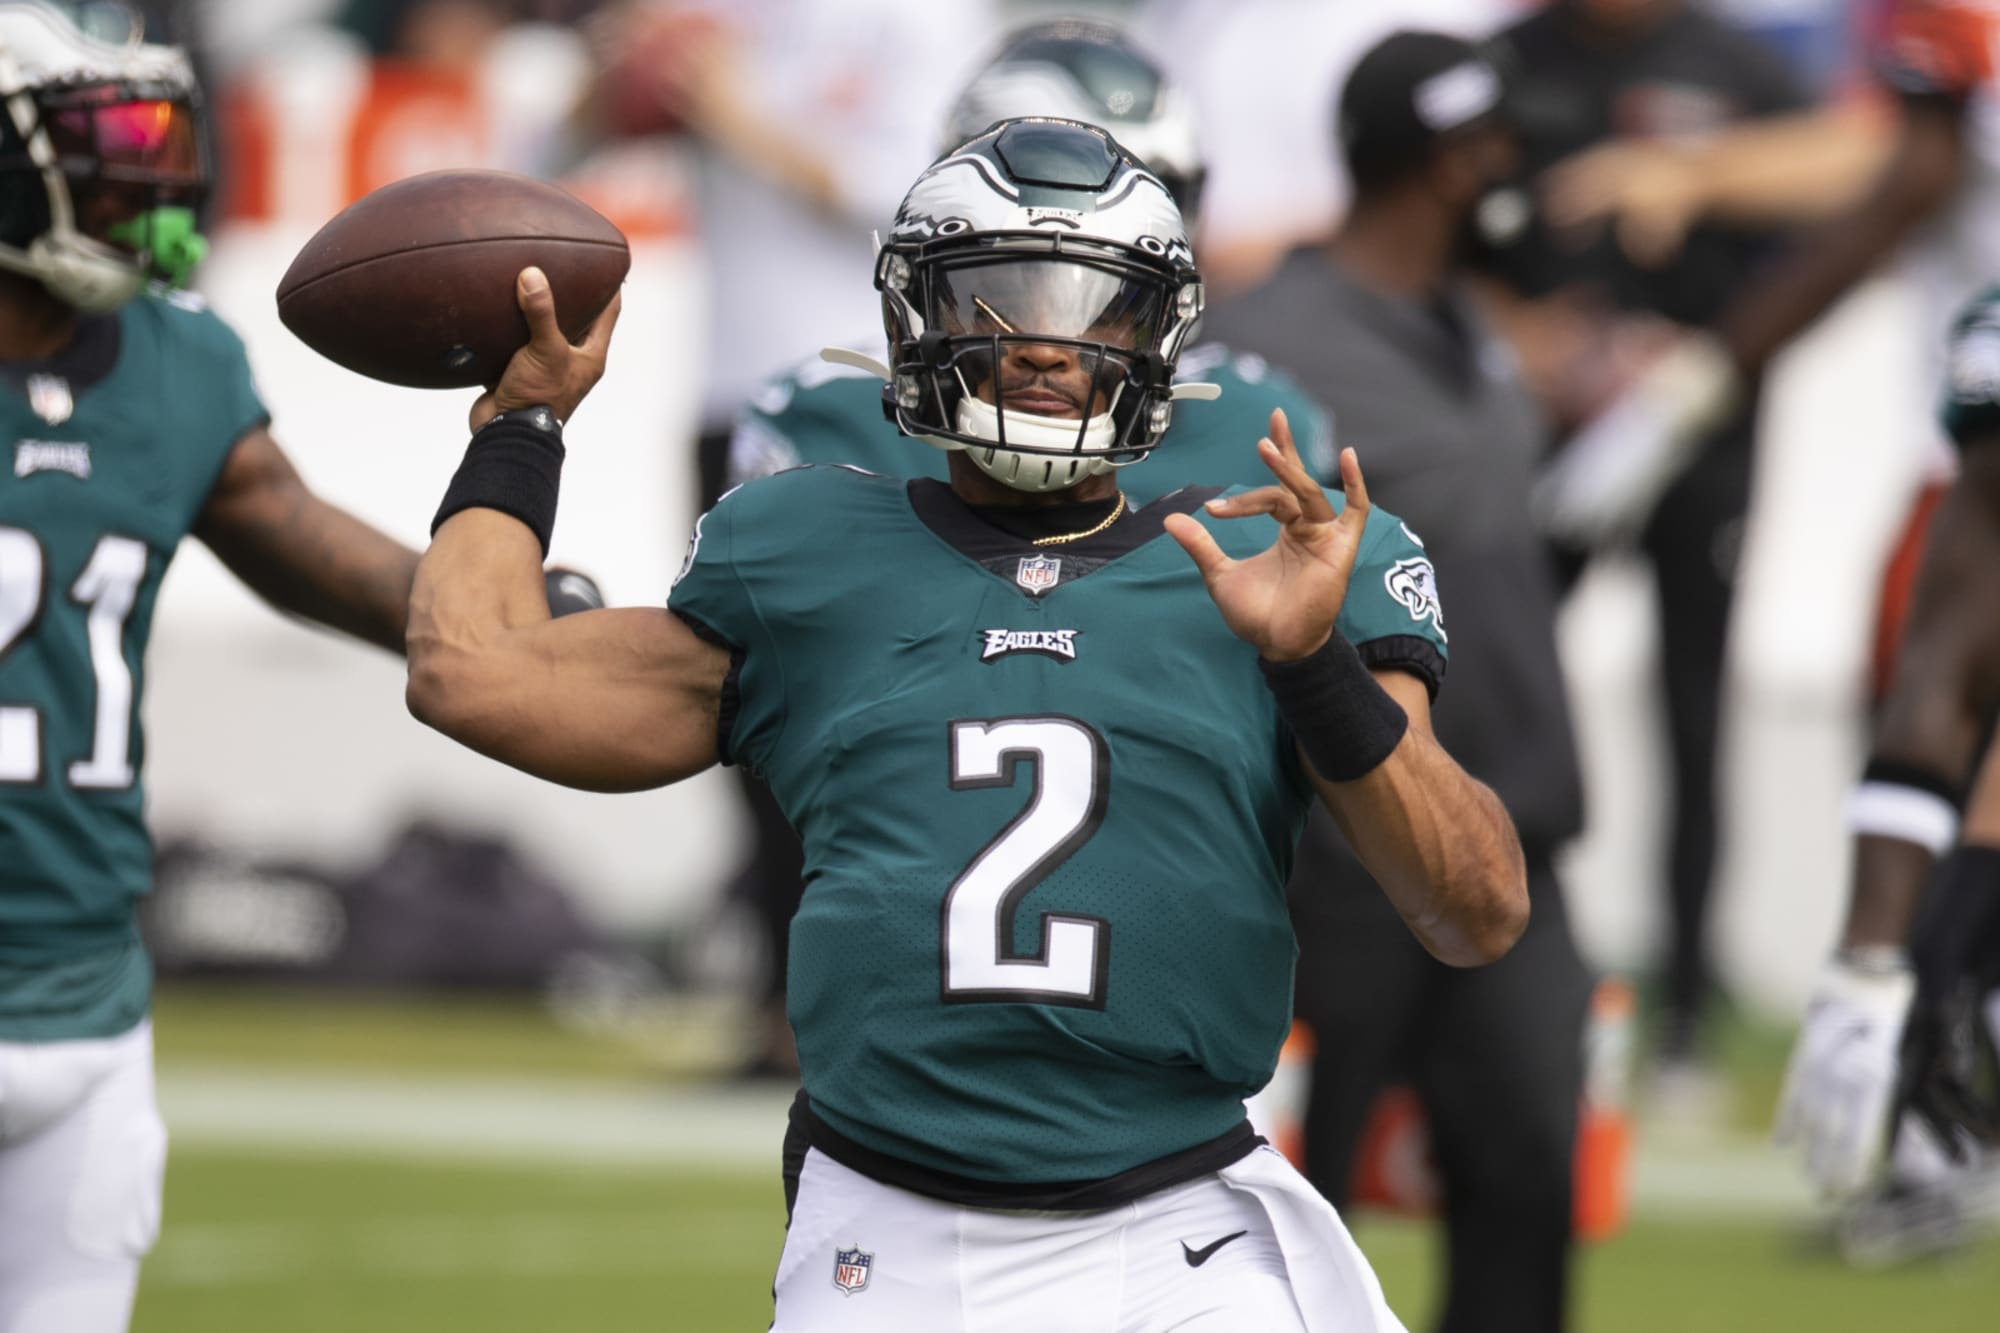 Jalen Hurts might be making Carson Wentz's seat hot with Eagles